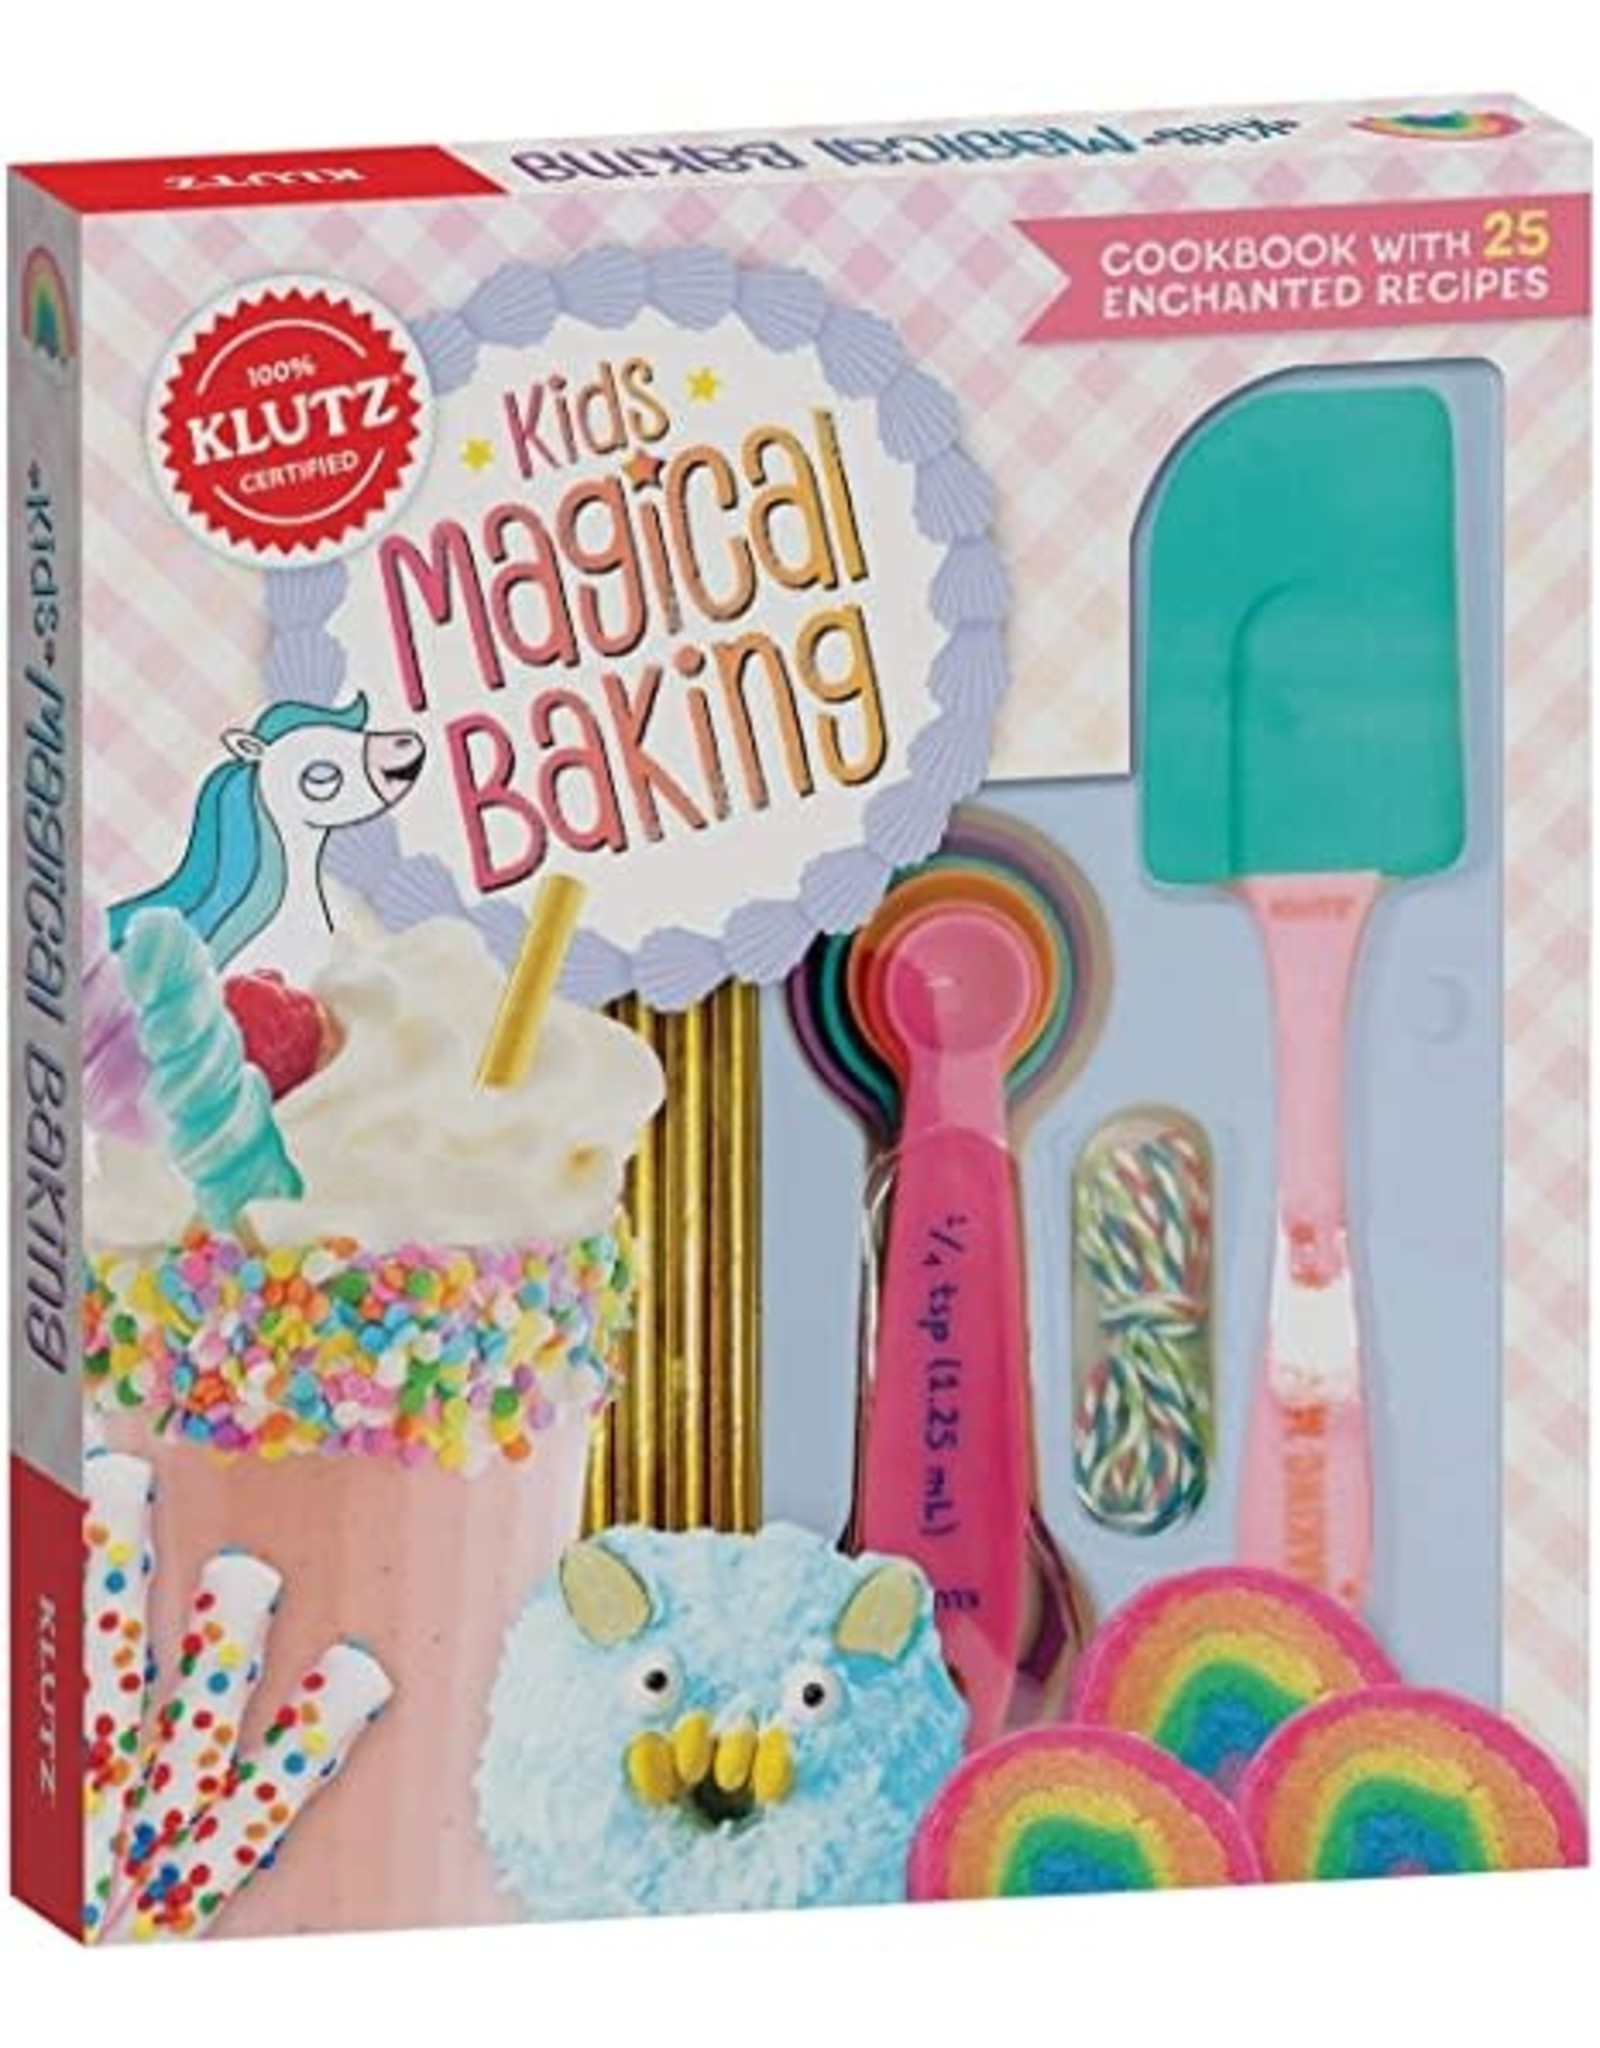 Klutz Klutz: Kids Magical Baking